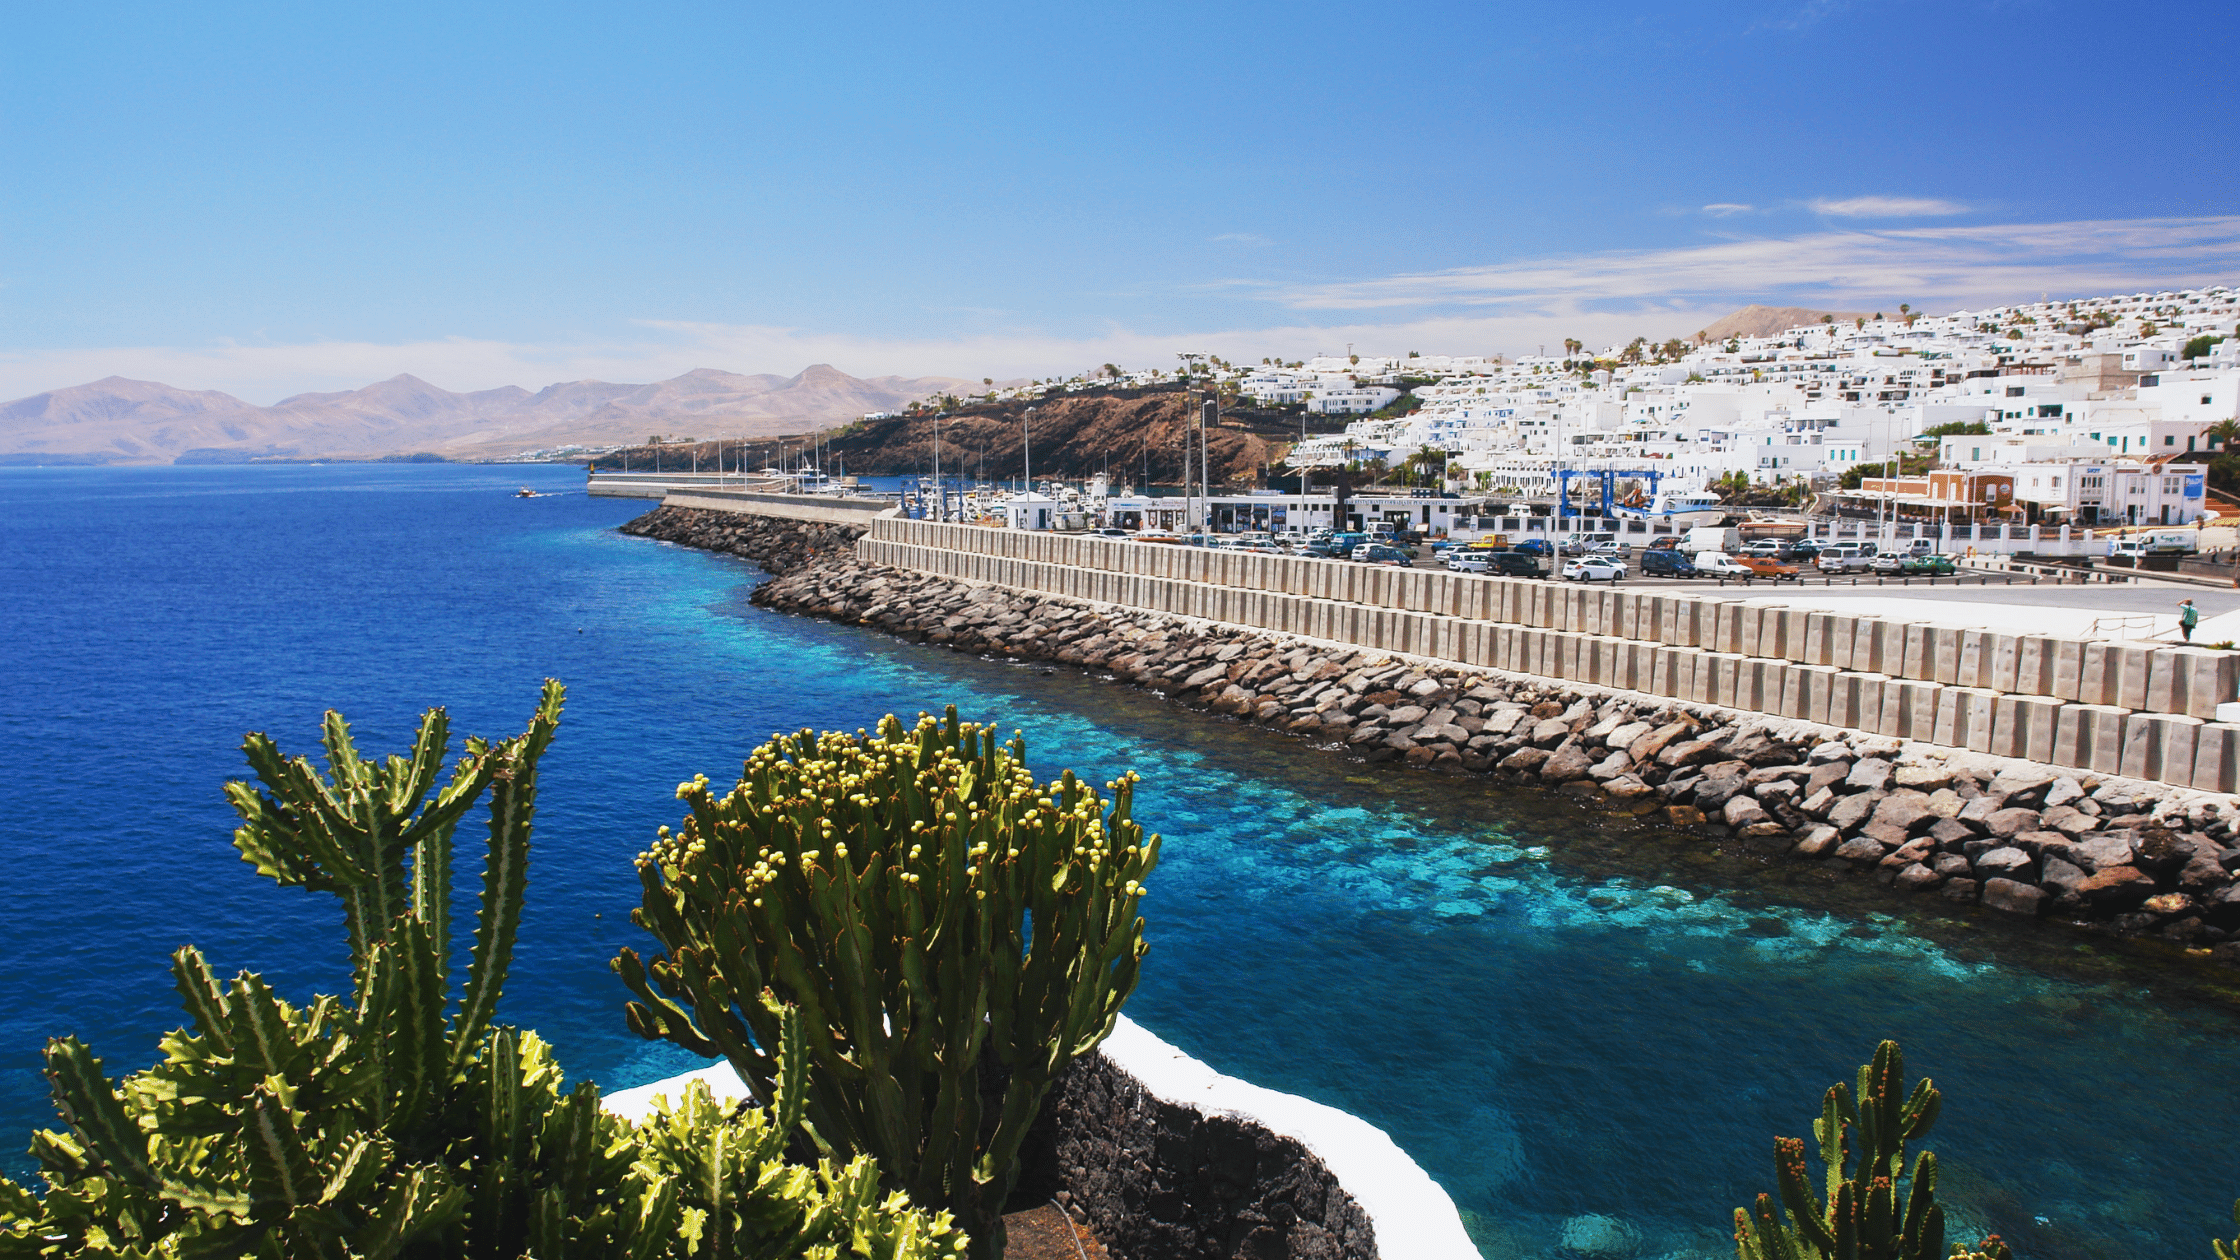 Special offer on a holiday to Lanzarote and staying at the Cinqo Plaza Apartments